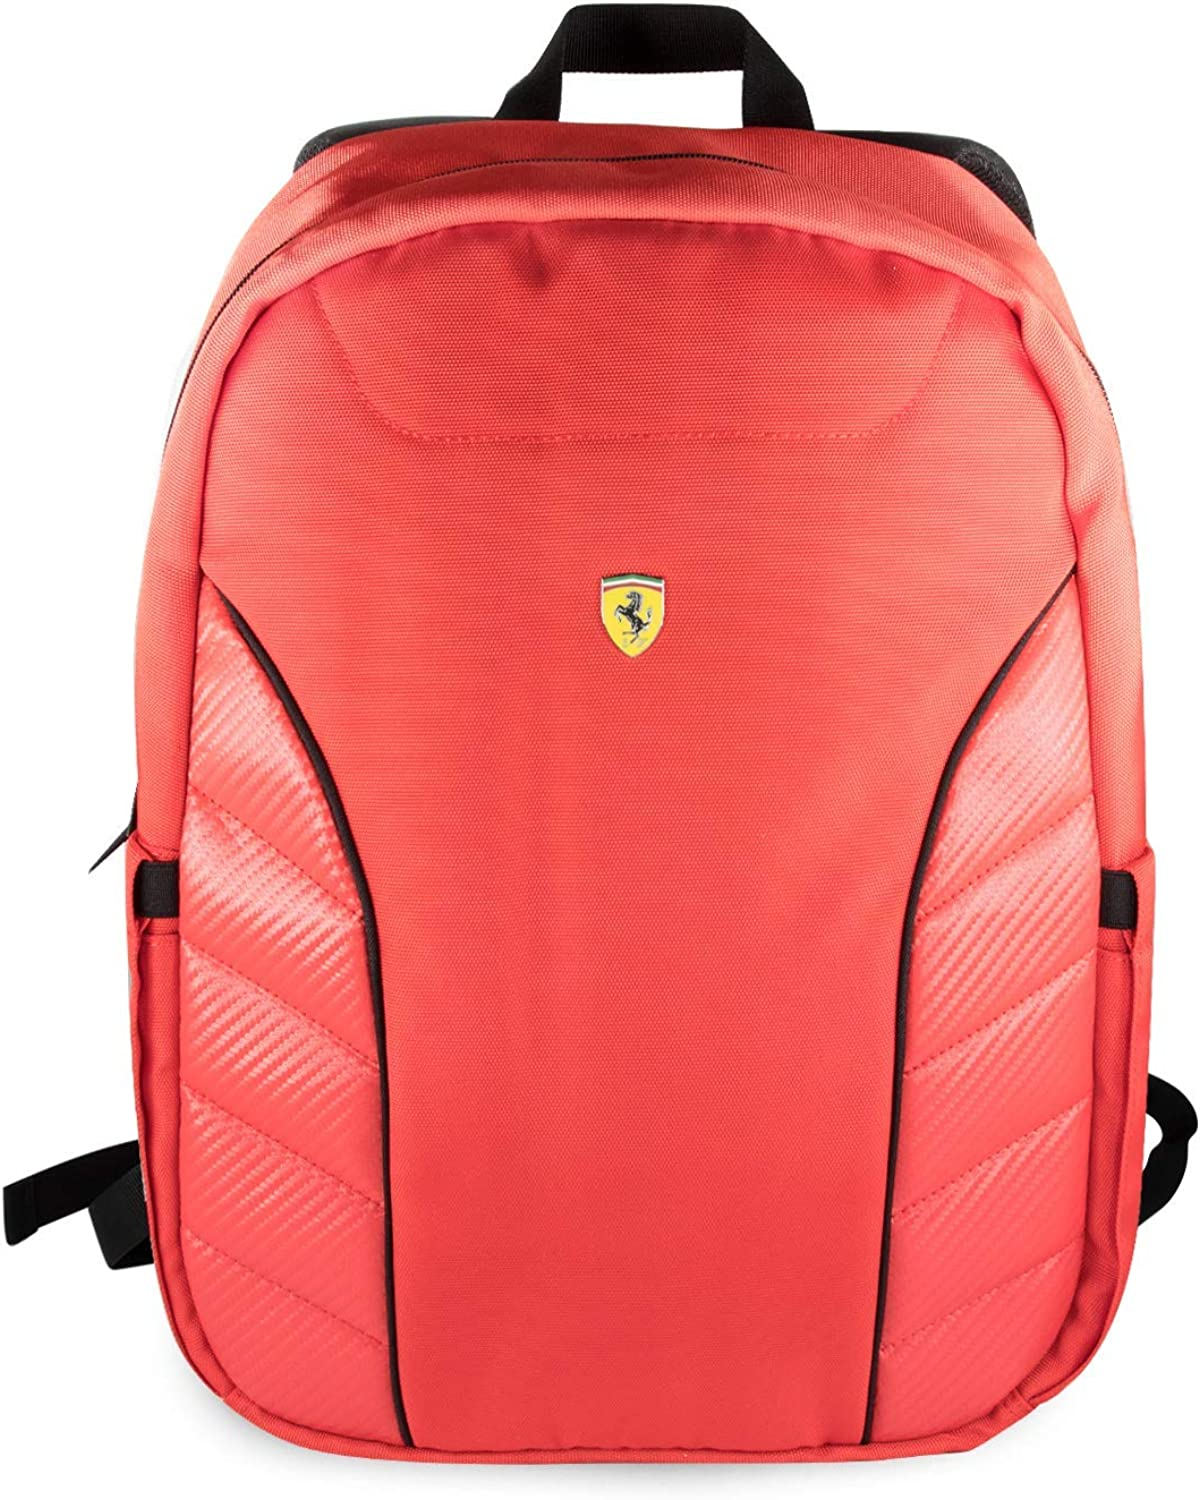 Amazon Com Ferrari Laptop Backpack 15 Nylon With Pu Carbon Leather Slim Fit Pockets Double Zipper Organizer 15 6 Macbook Pro Bag Computer Bags For Men And Women Red Shoes